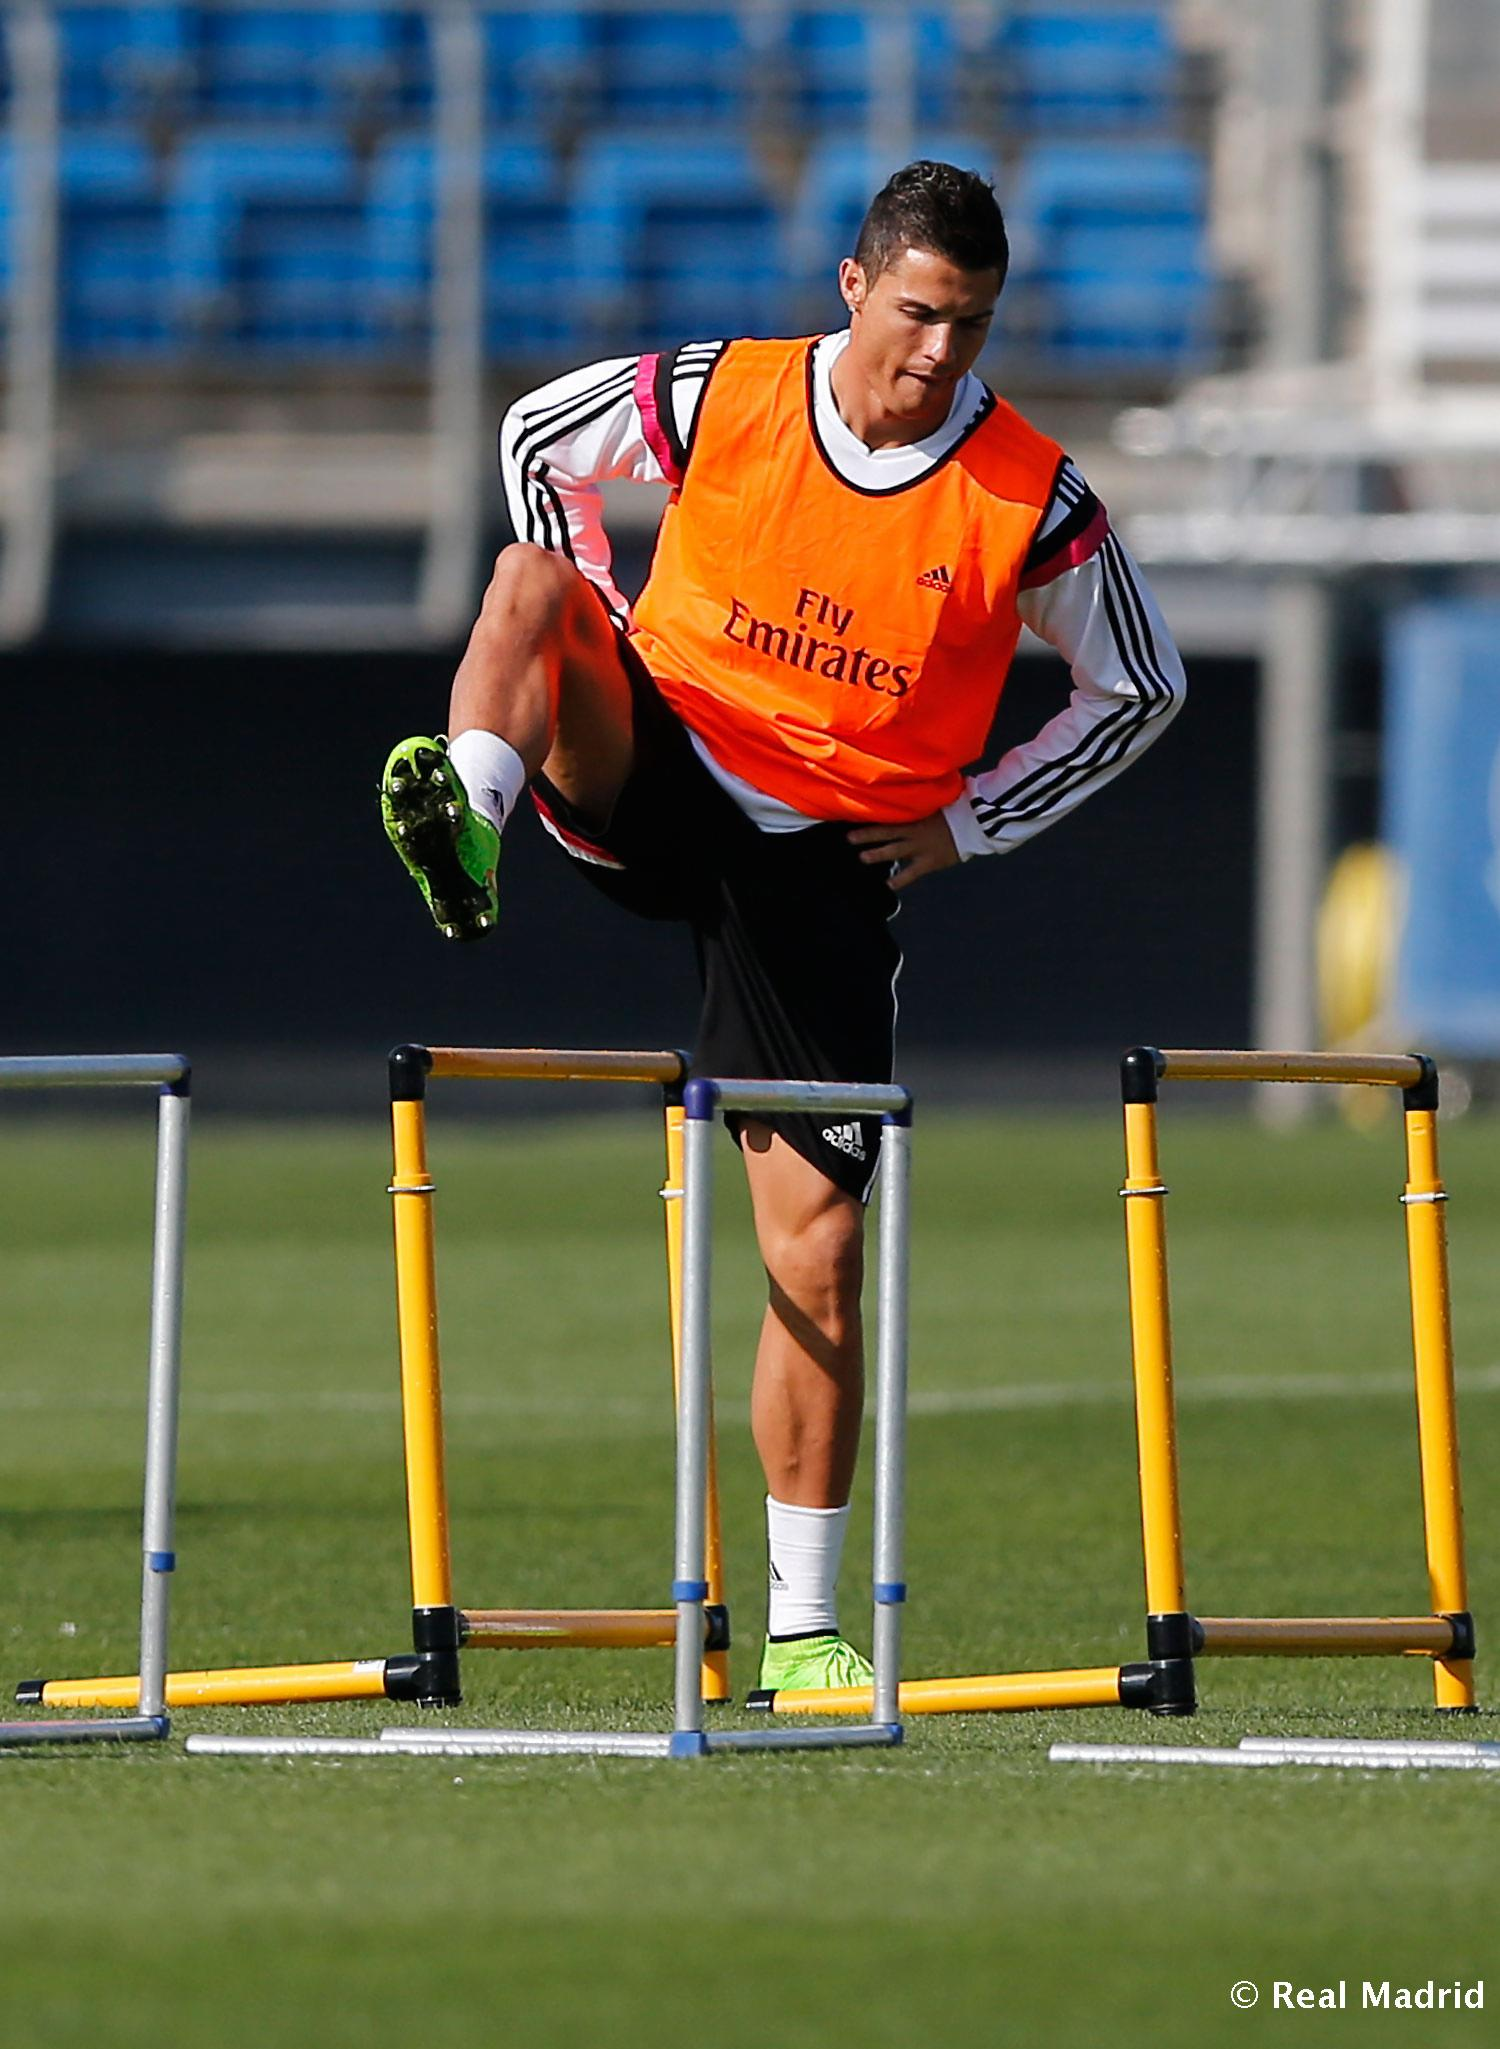 Real Madrid - Entrenamiento del Real Madrid - 25-09-2014